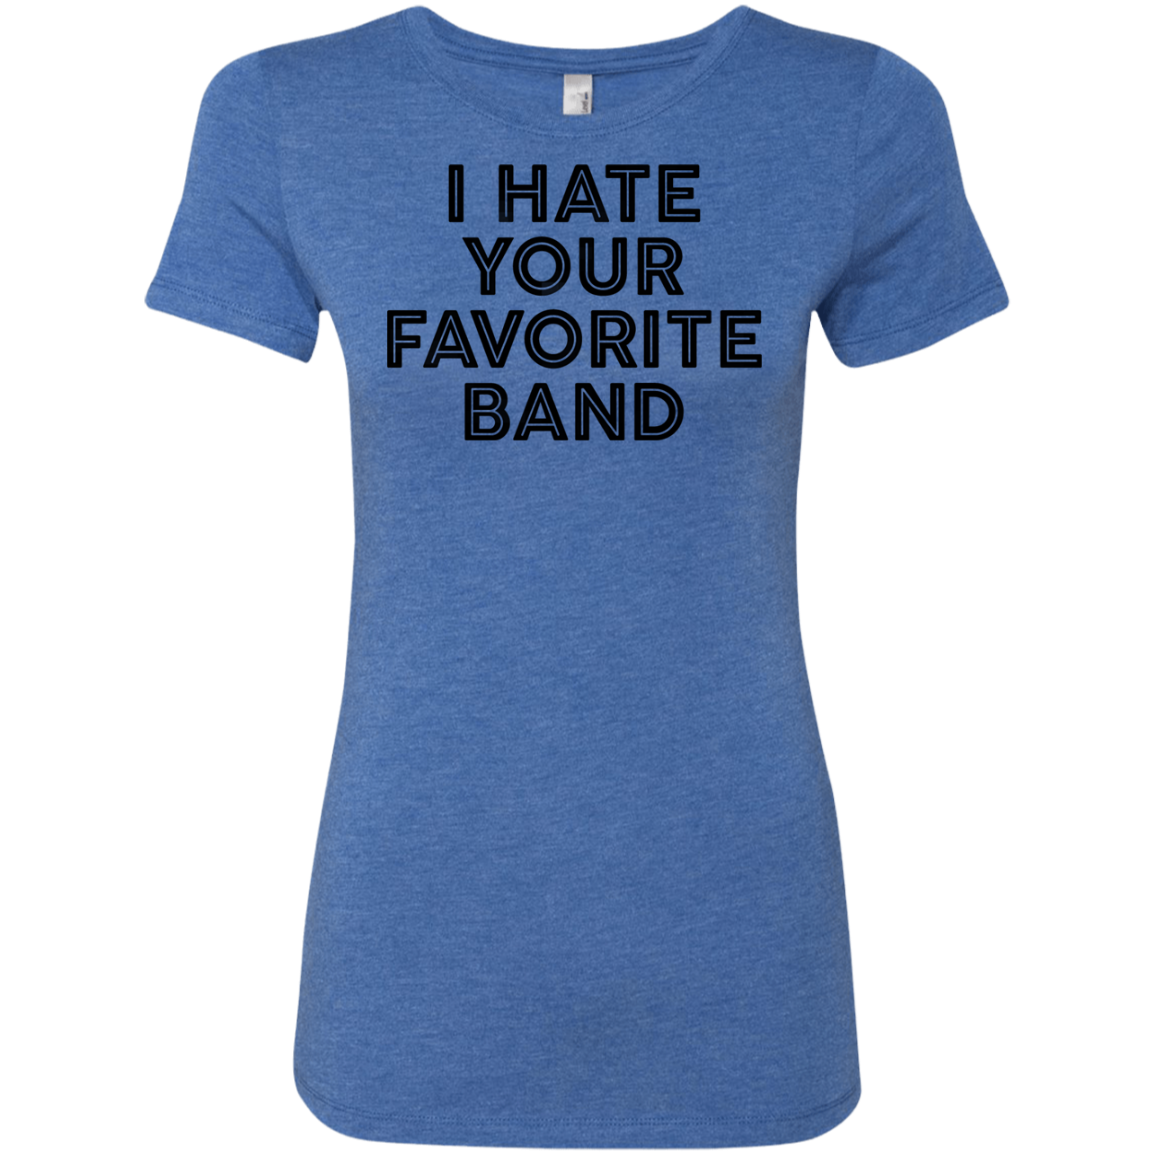 I Hate Your Favorite Band Women's Classic Tee